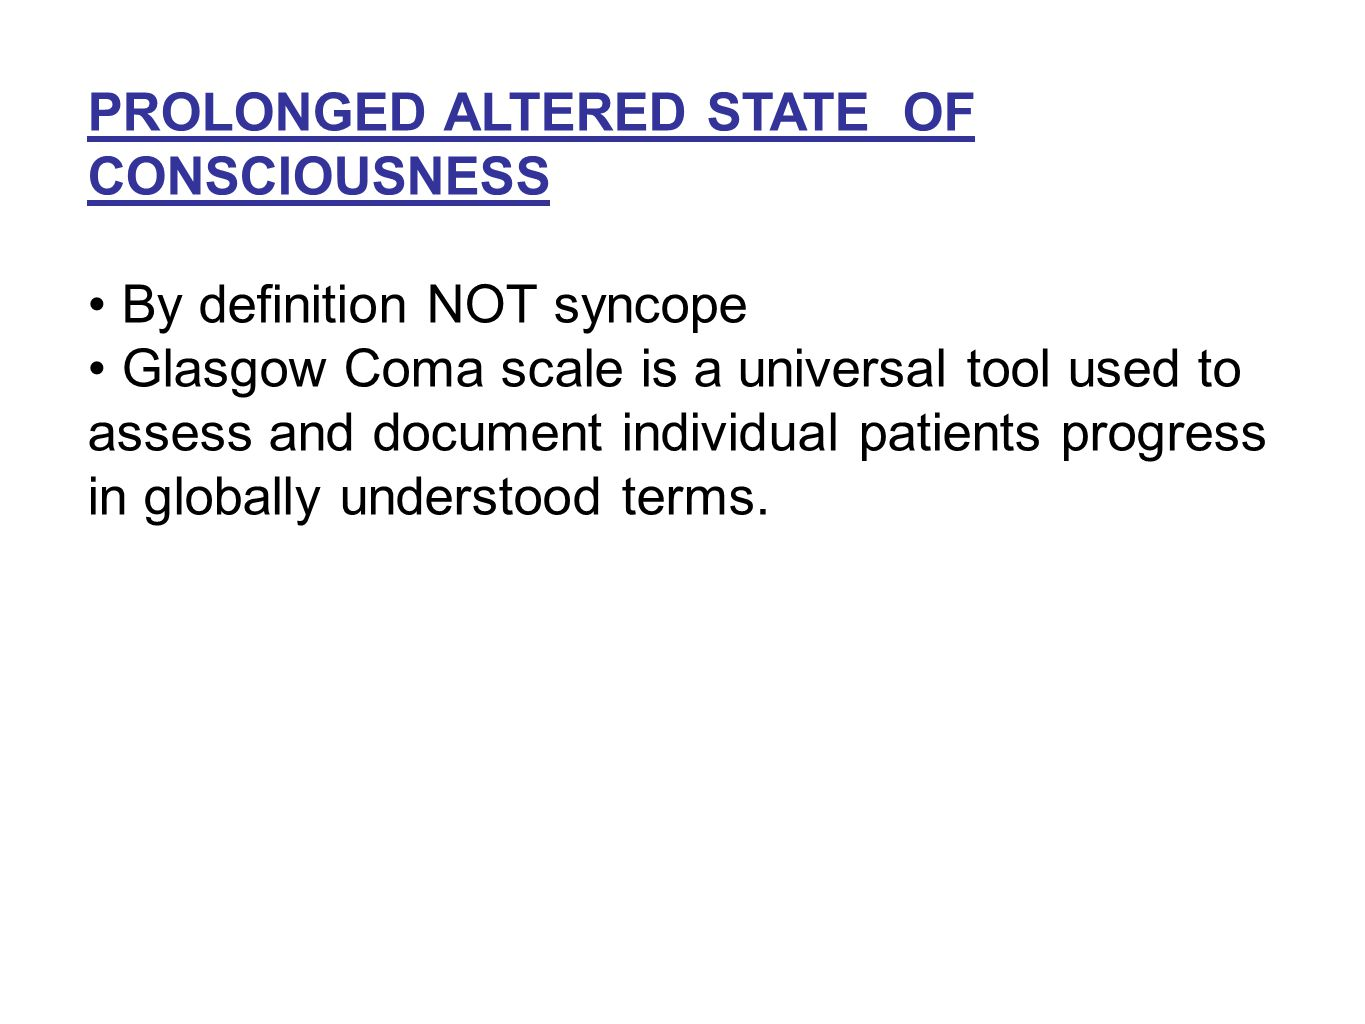 PROLONGED ALTERED STATE OF CONSCIOUSNESS By definition NOT syncope Glasgow Coma scale is a universal tool used to assess and document individual patie